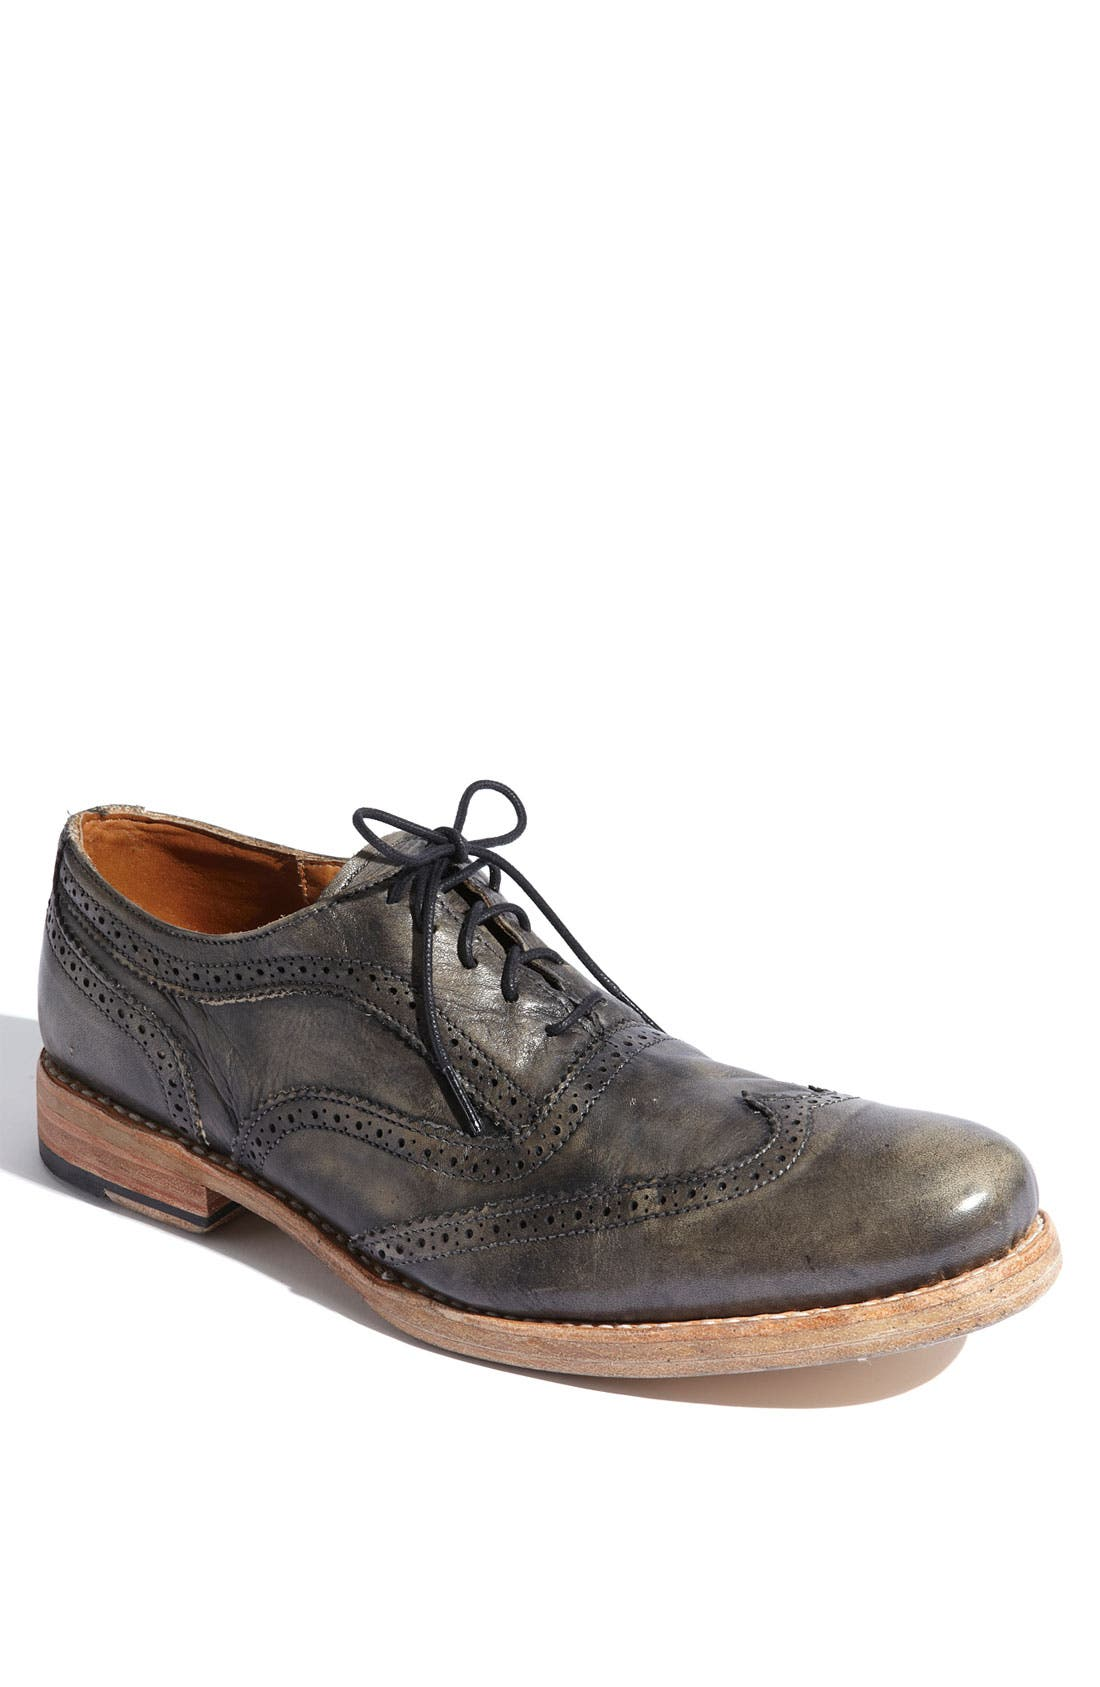 'Corsico' Wingtip Oxford,                         Main,                         color, 001